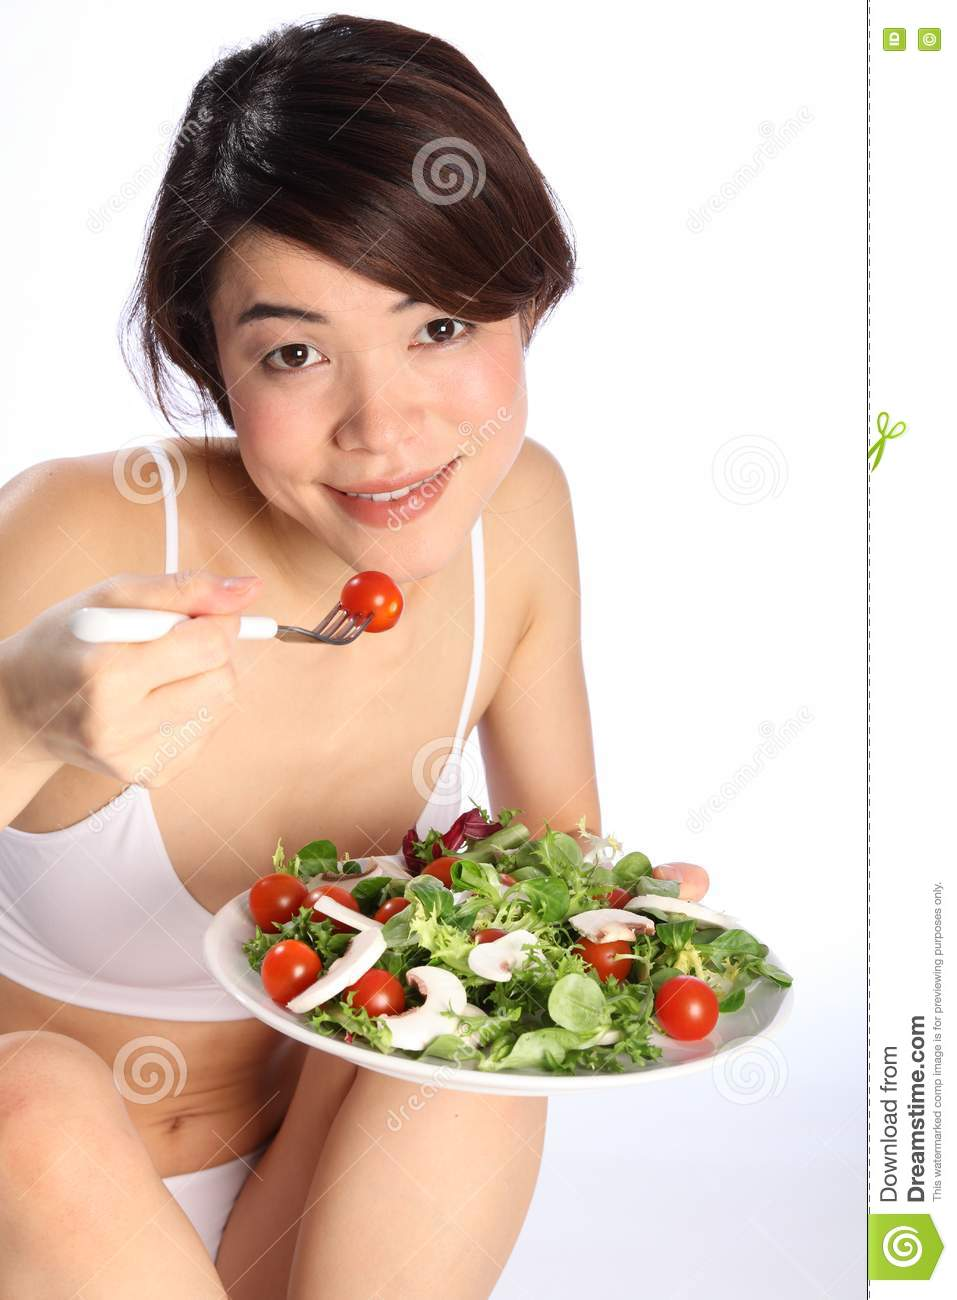 How Eat Healthy While Eating Out